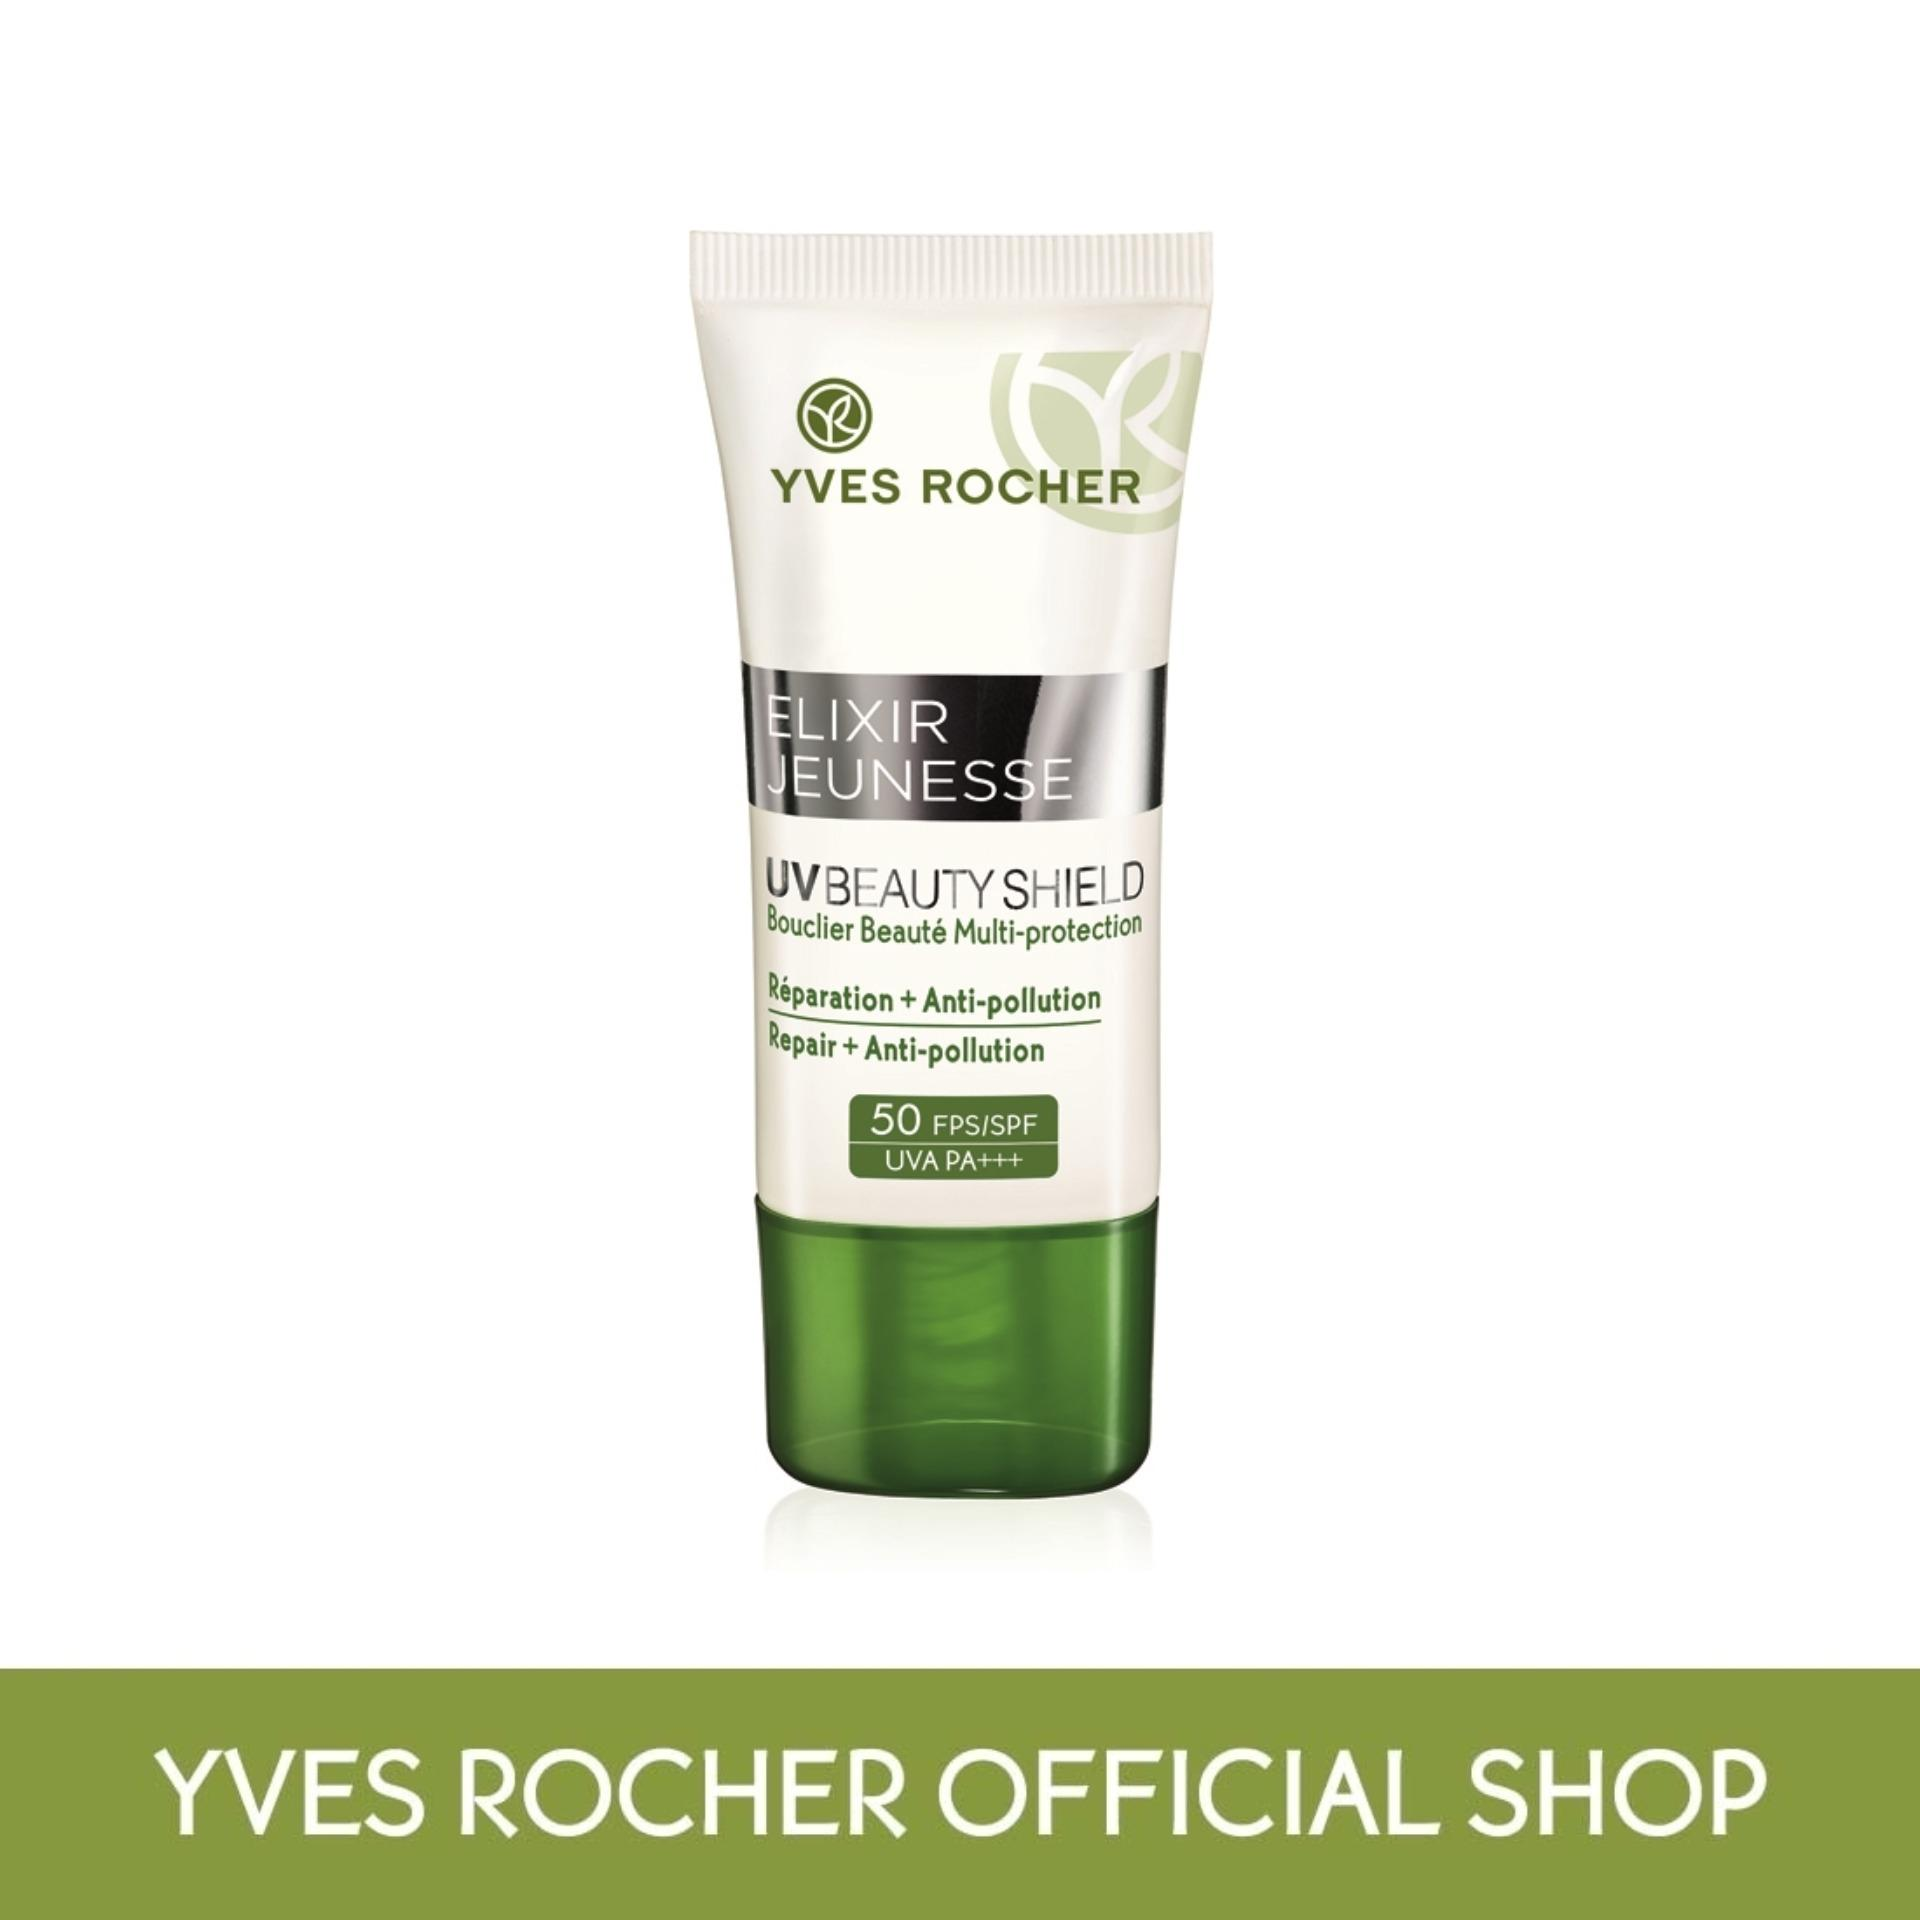 Yves Rocher Elixir Jeunesse Uv Beauty Shield Spf50 30ml By Yves Rocher Singapore (capitaland Merchant).